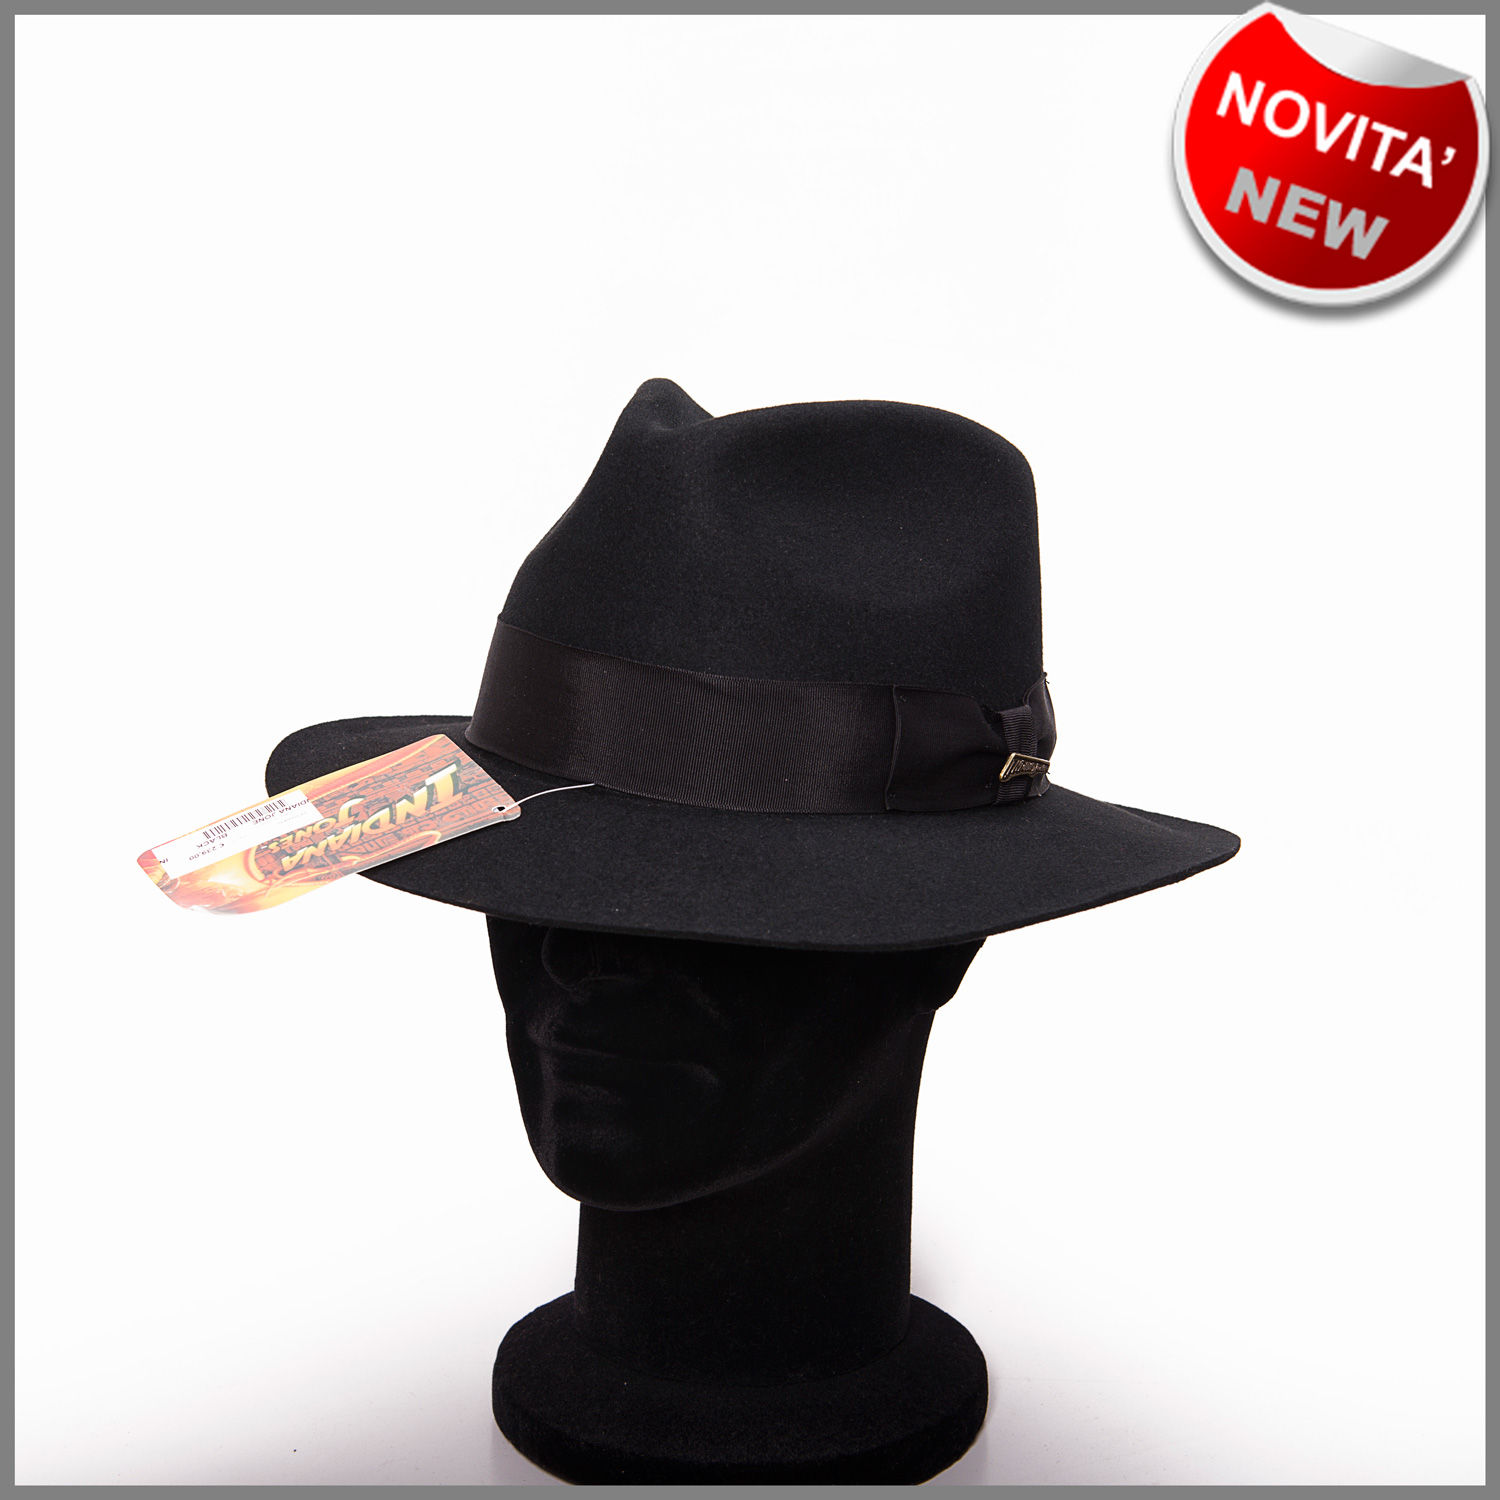 Cappello indiana jones originale nero in puro feltro 8a4719b3190d